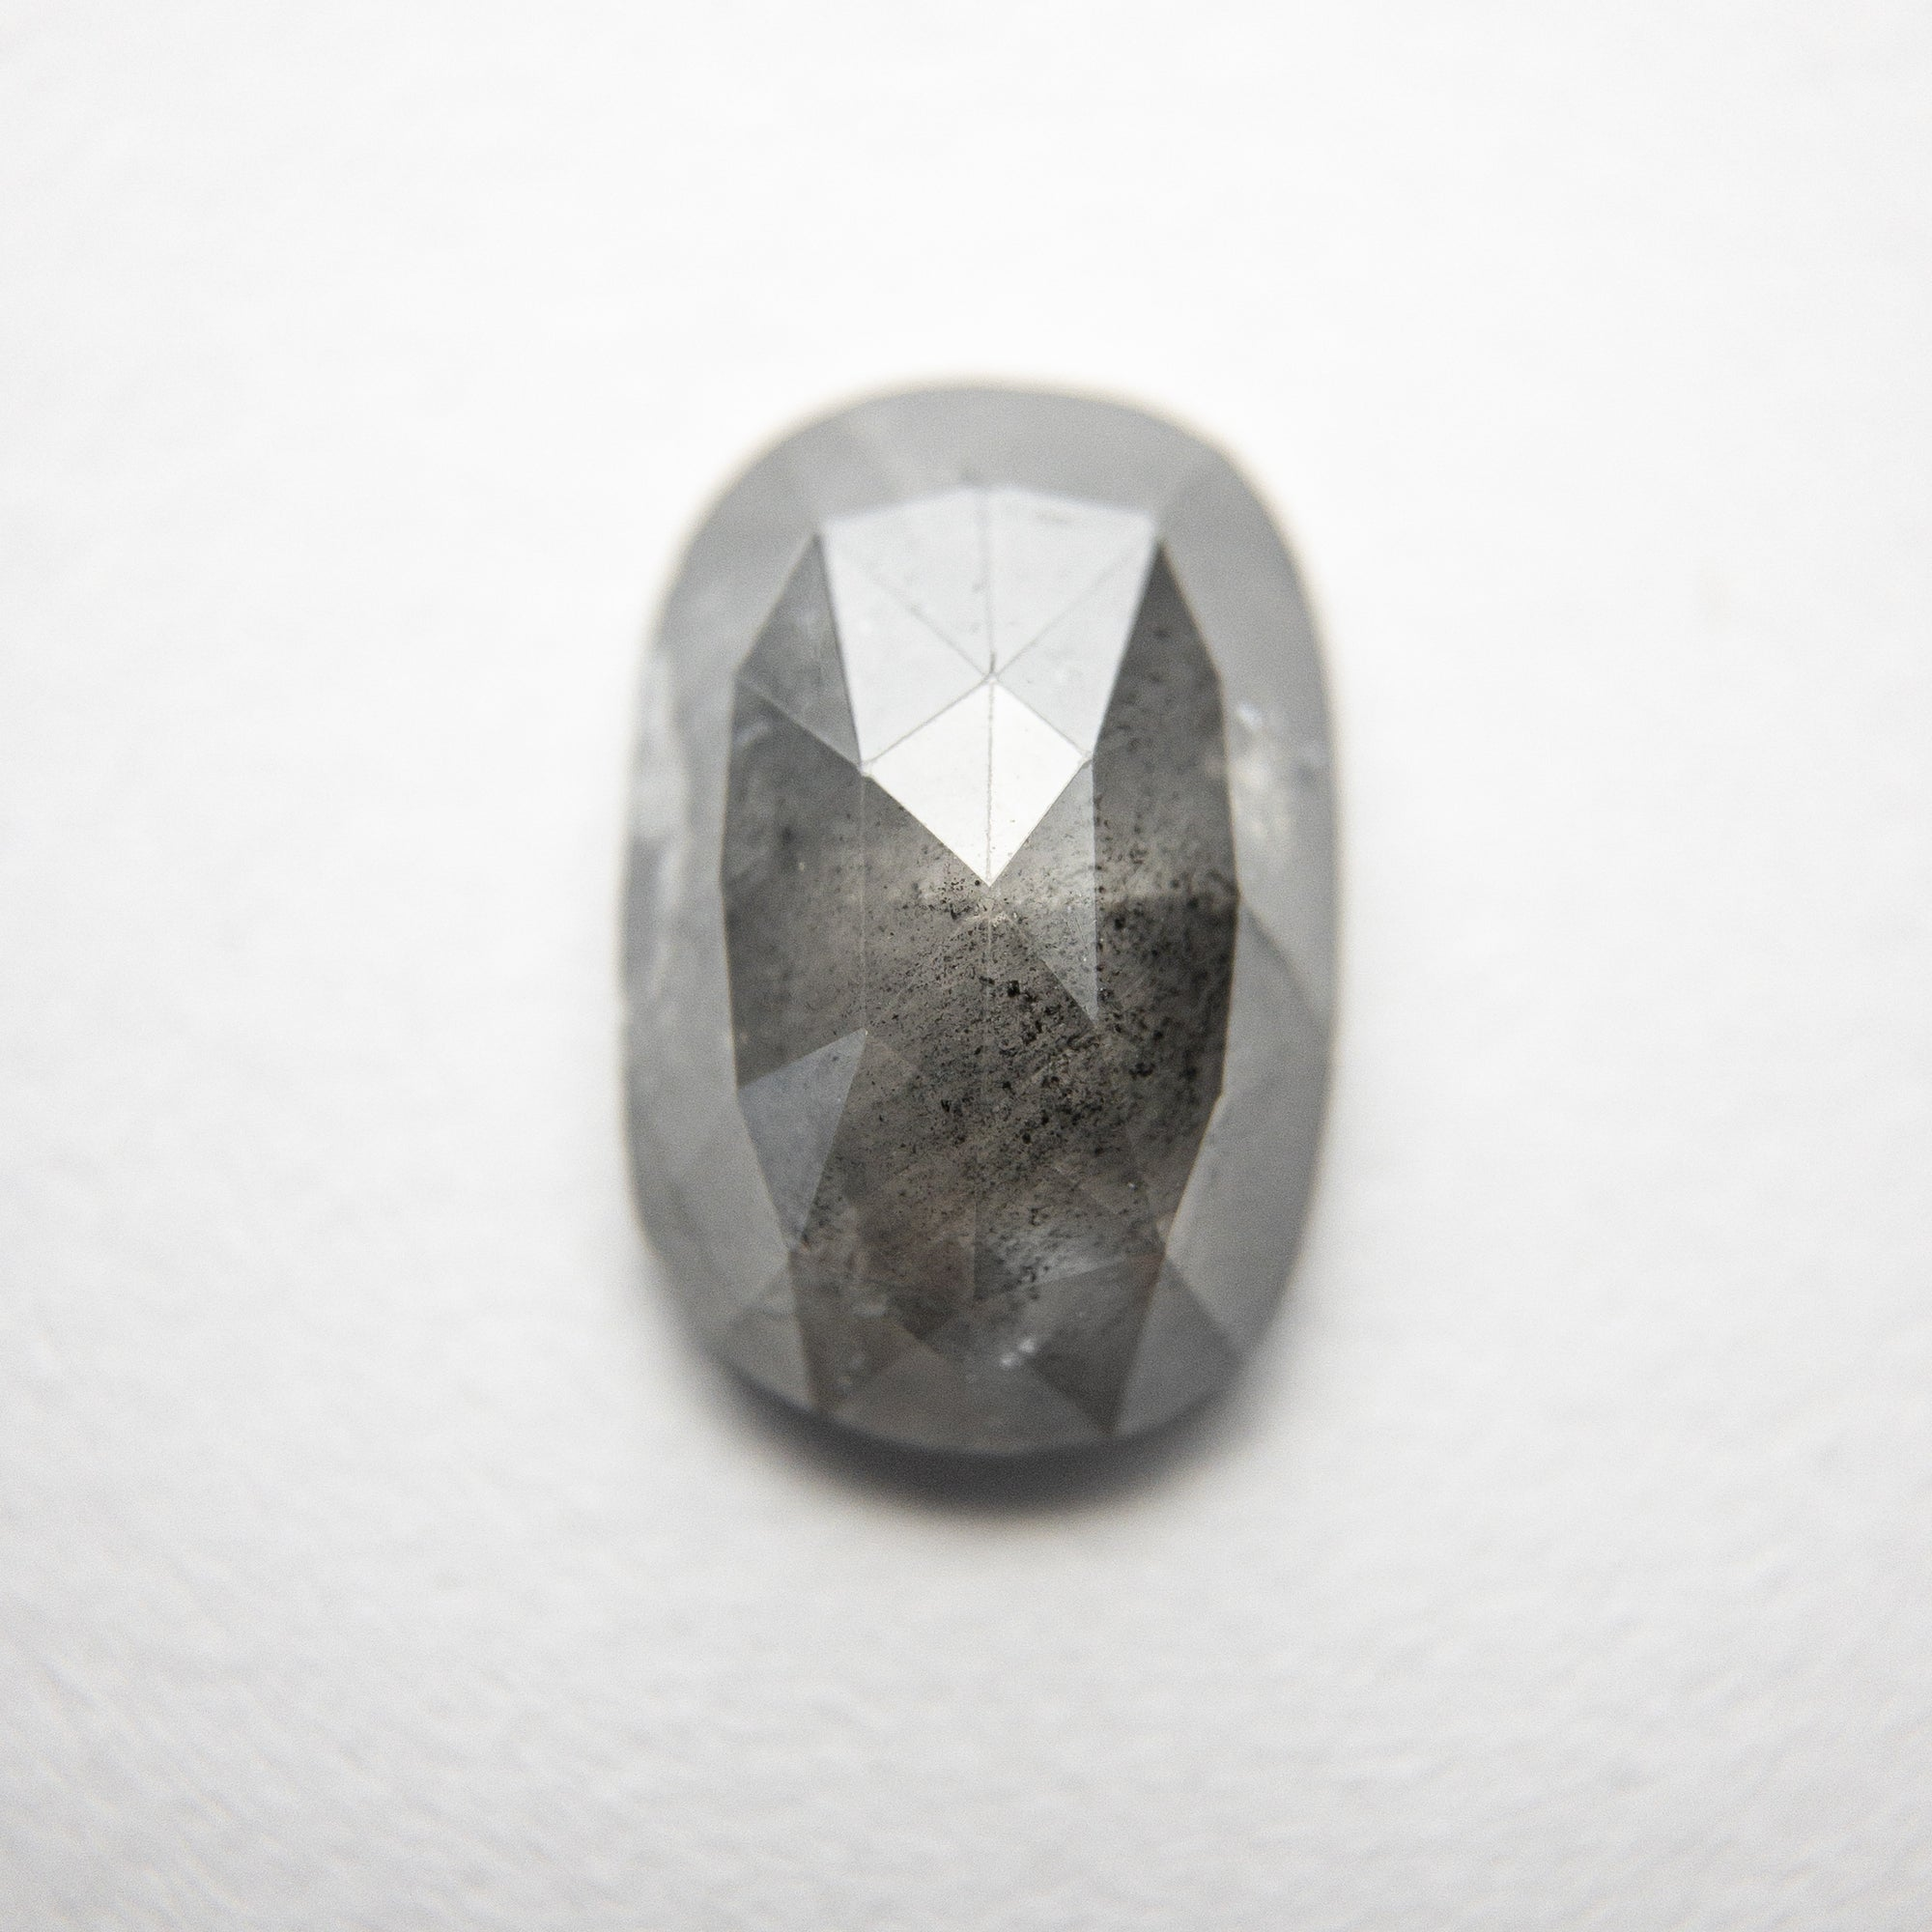 2.39ct10.48x7.12x3.36mm Oval Rosecut 18312-07